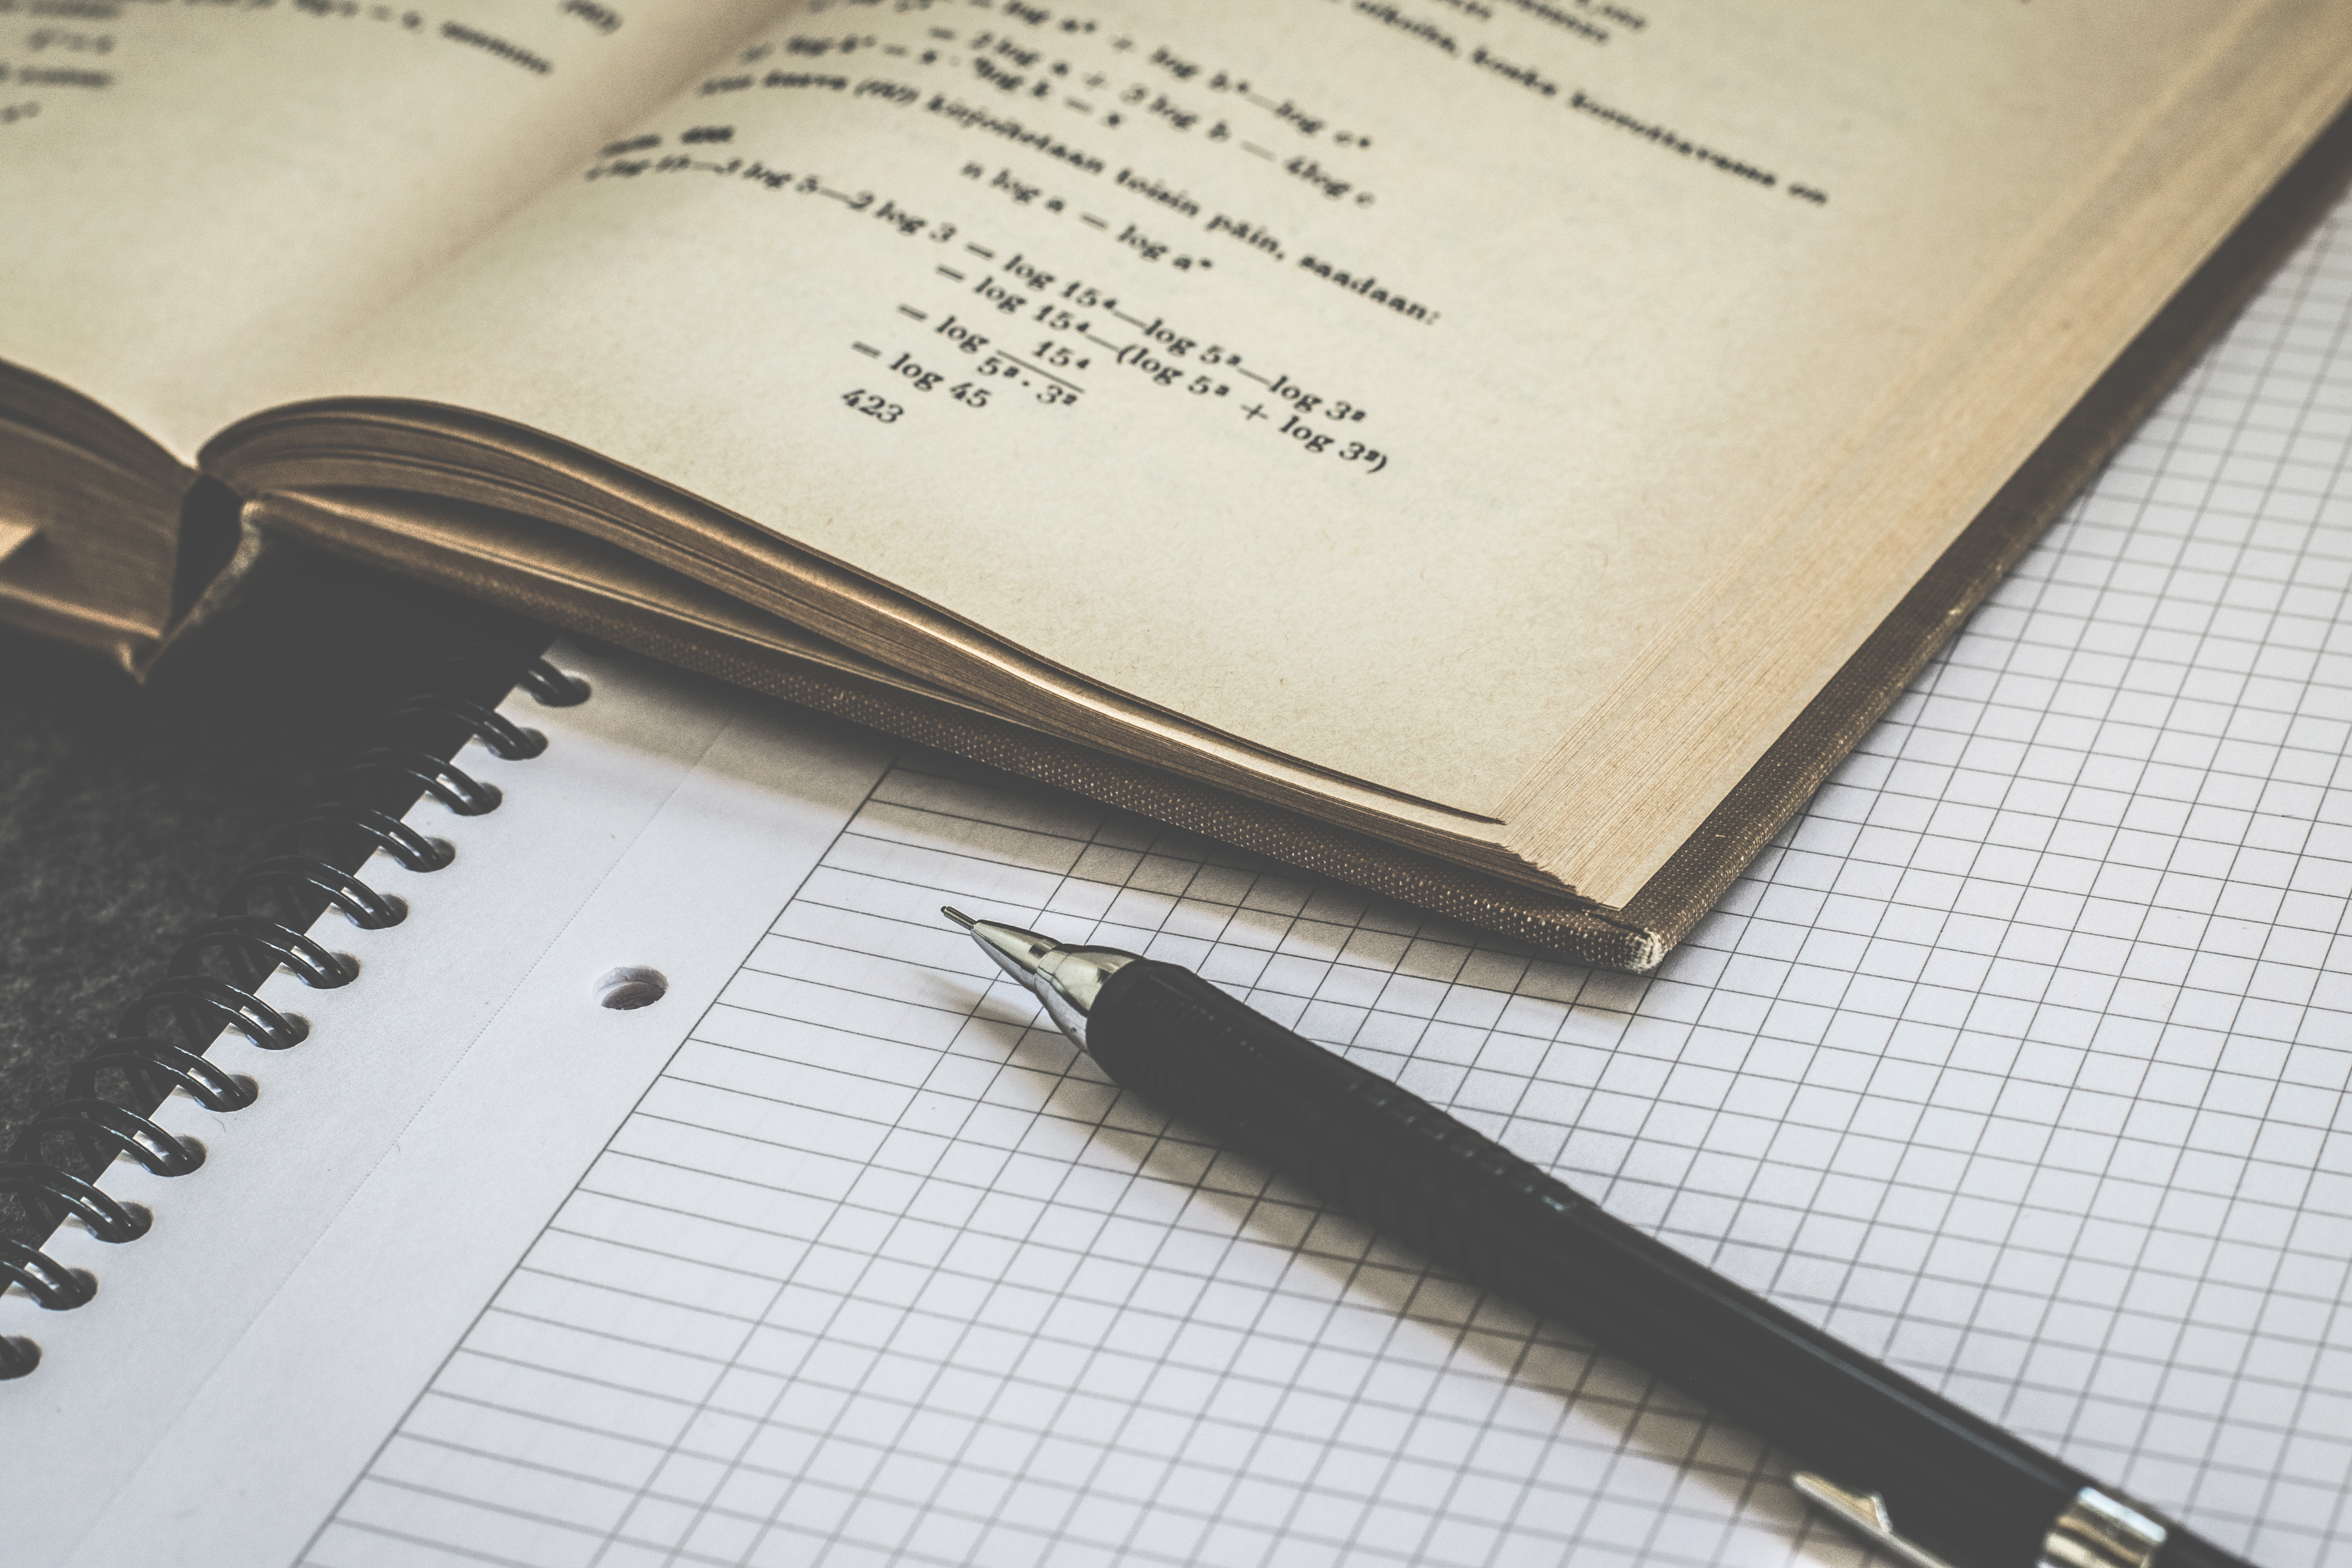 A pen and some graph paper next to an open book with mathematics in